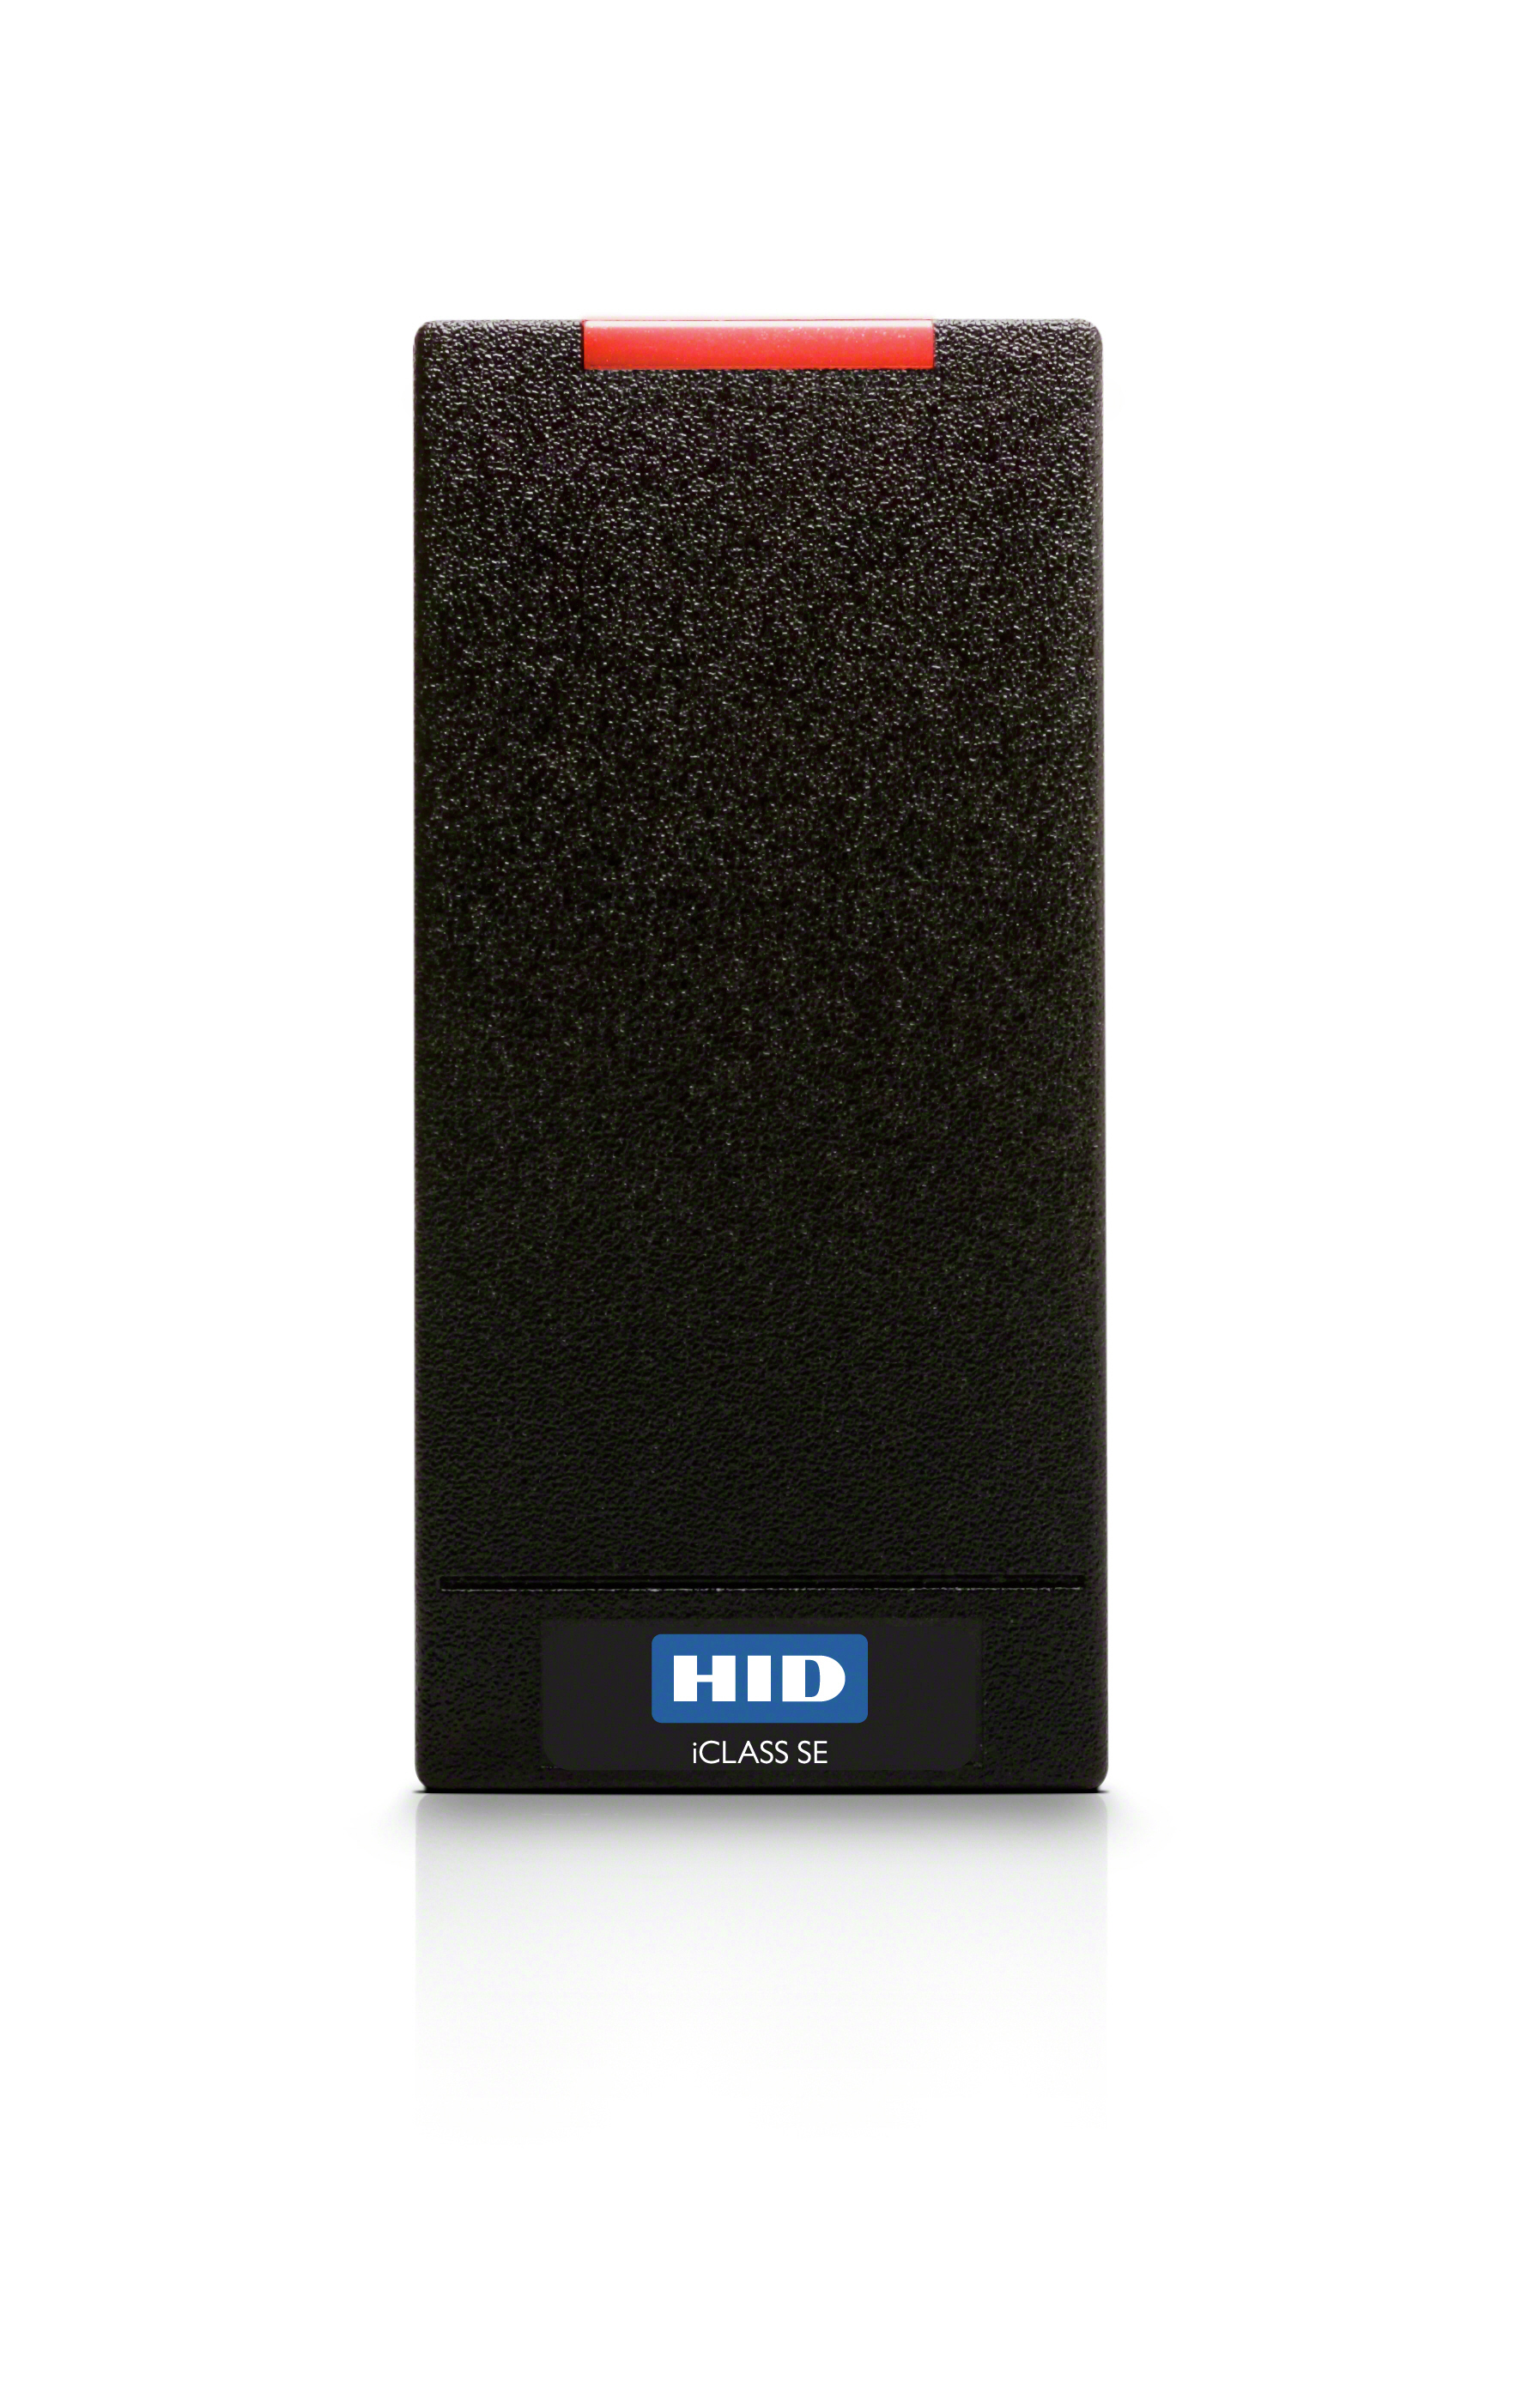 HID iCLASS SE R10 Contactless Smart Card Reader, Mini